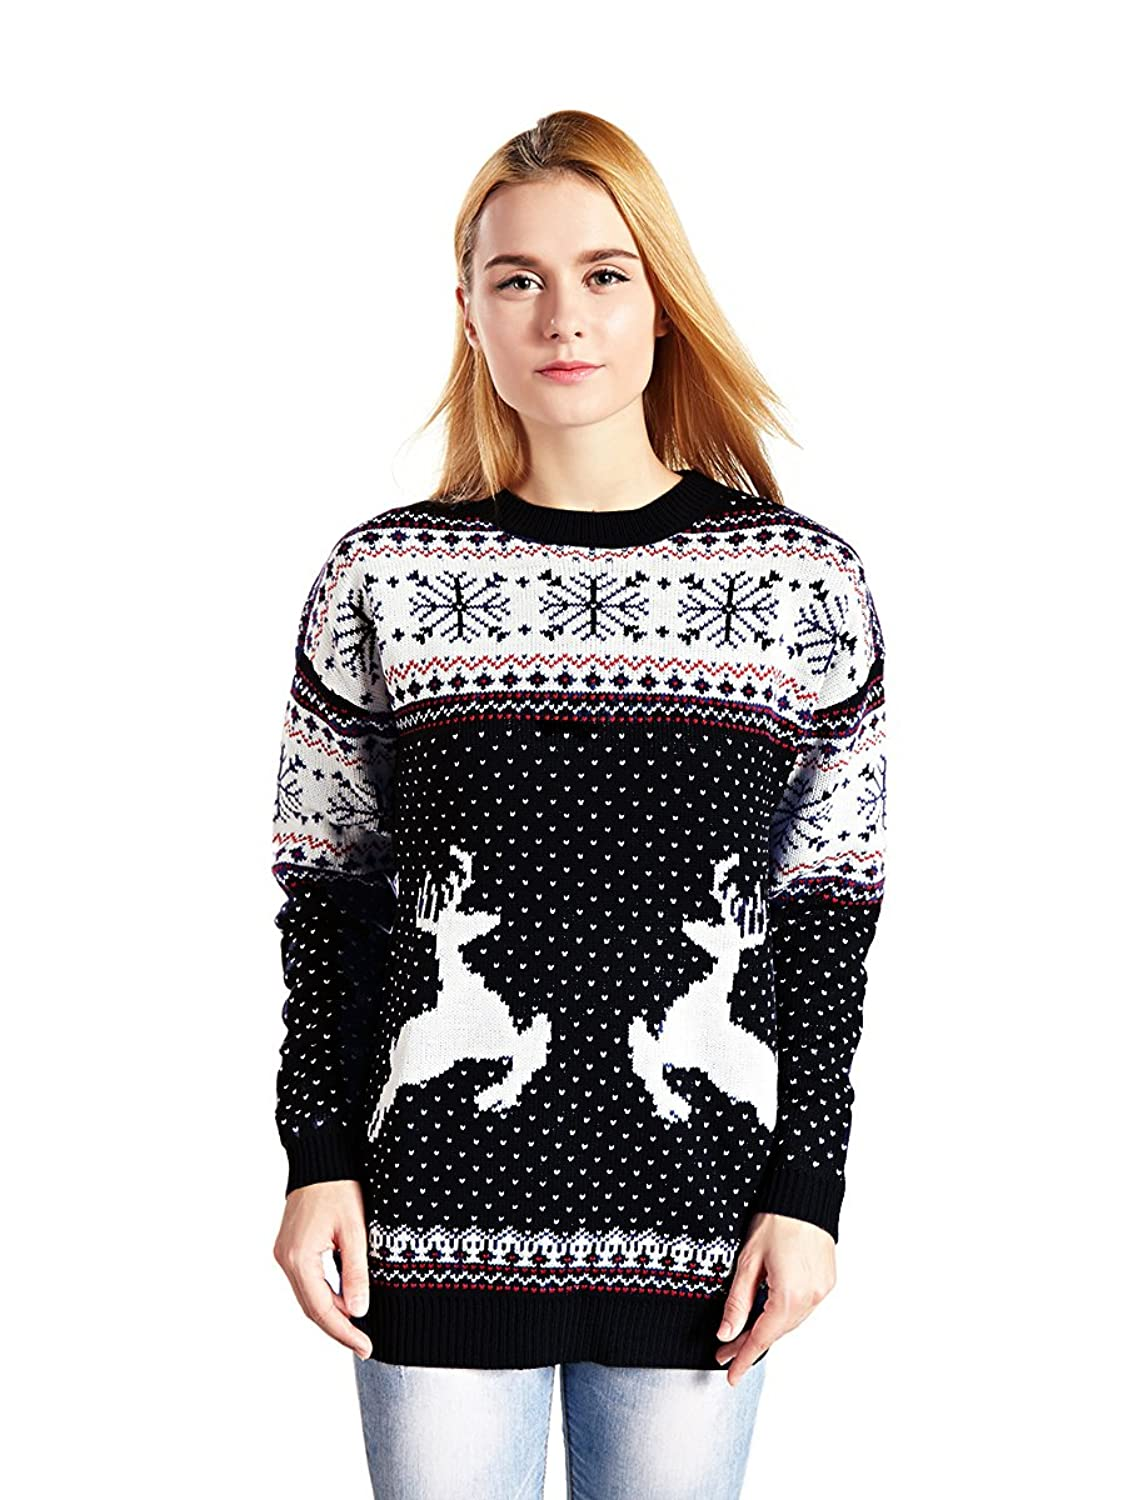 V28 Women's Christmas Reindeer Snowflakes Sweater Pullover at ...